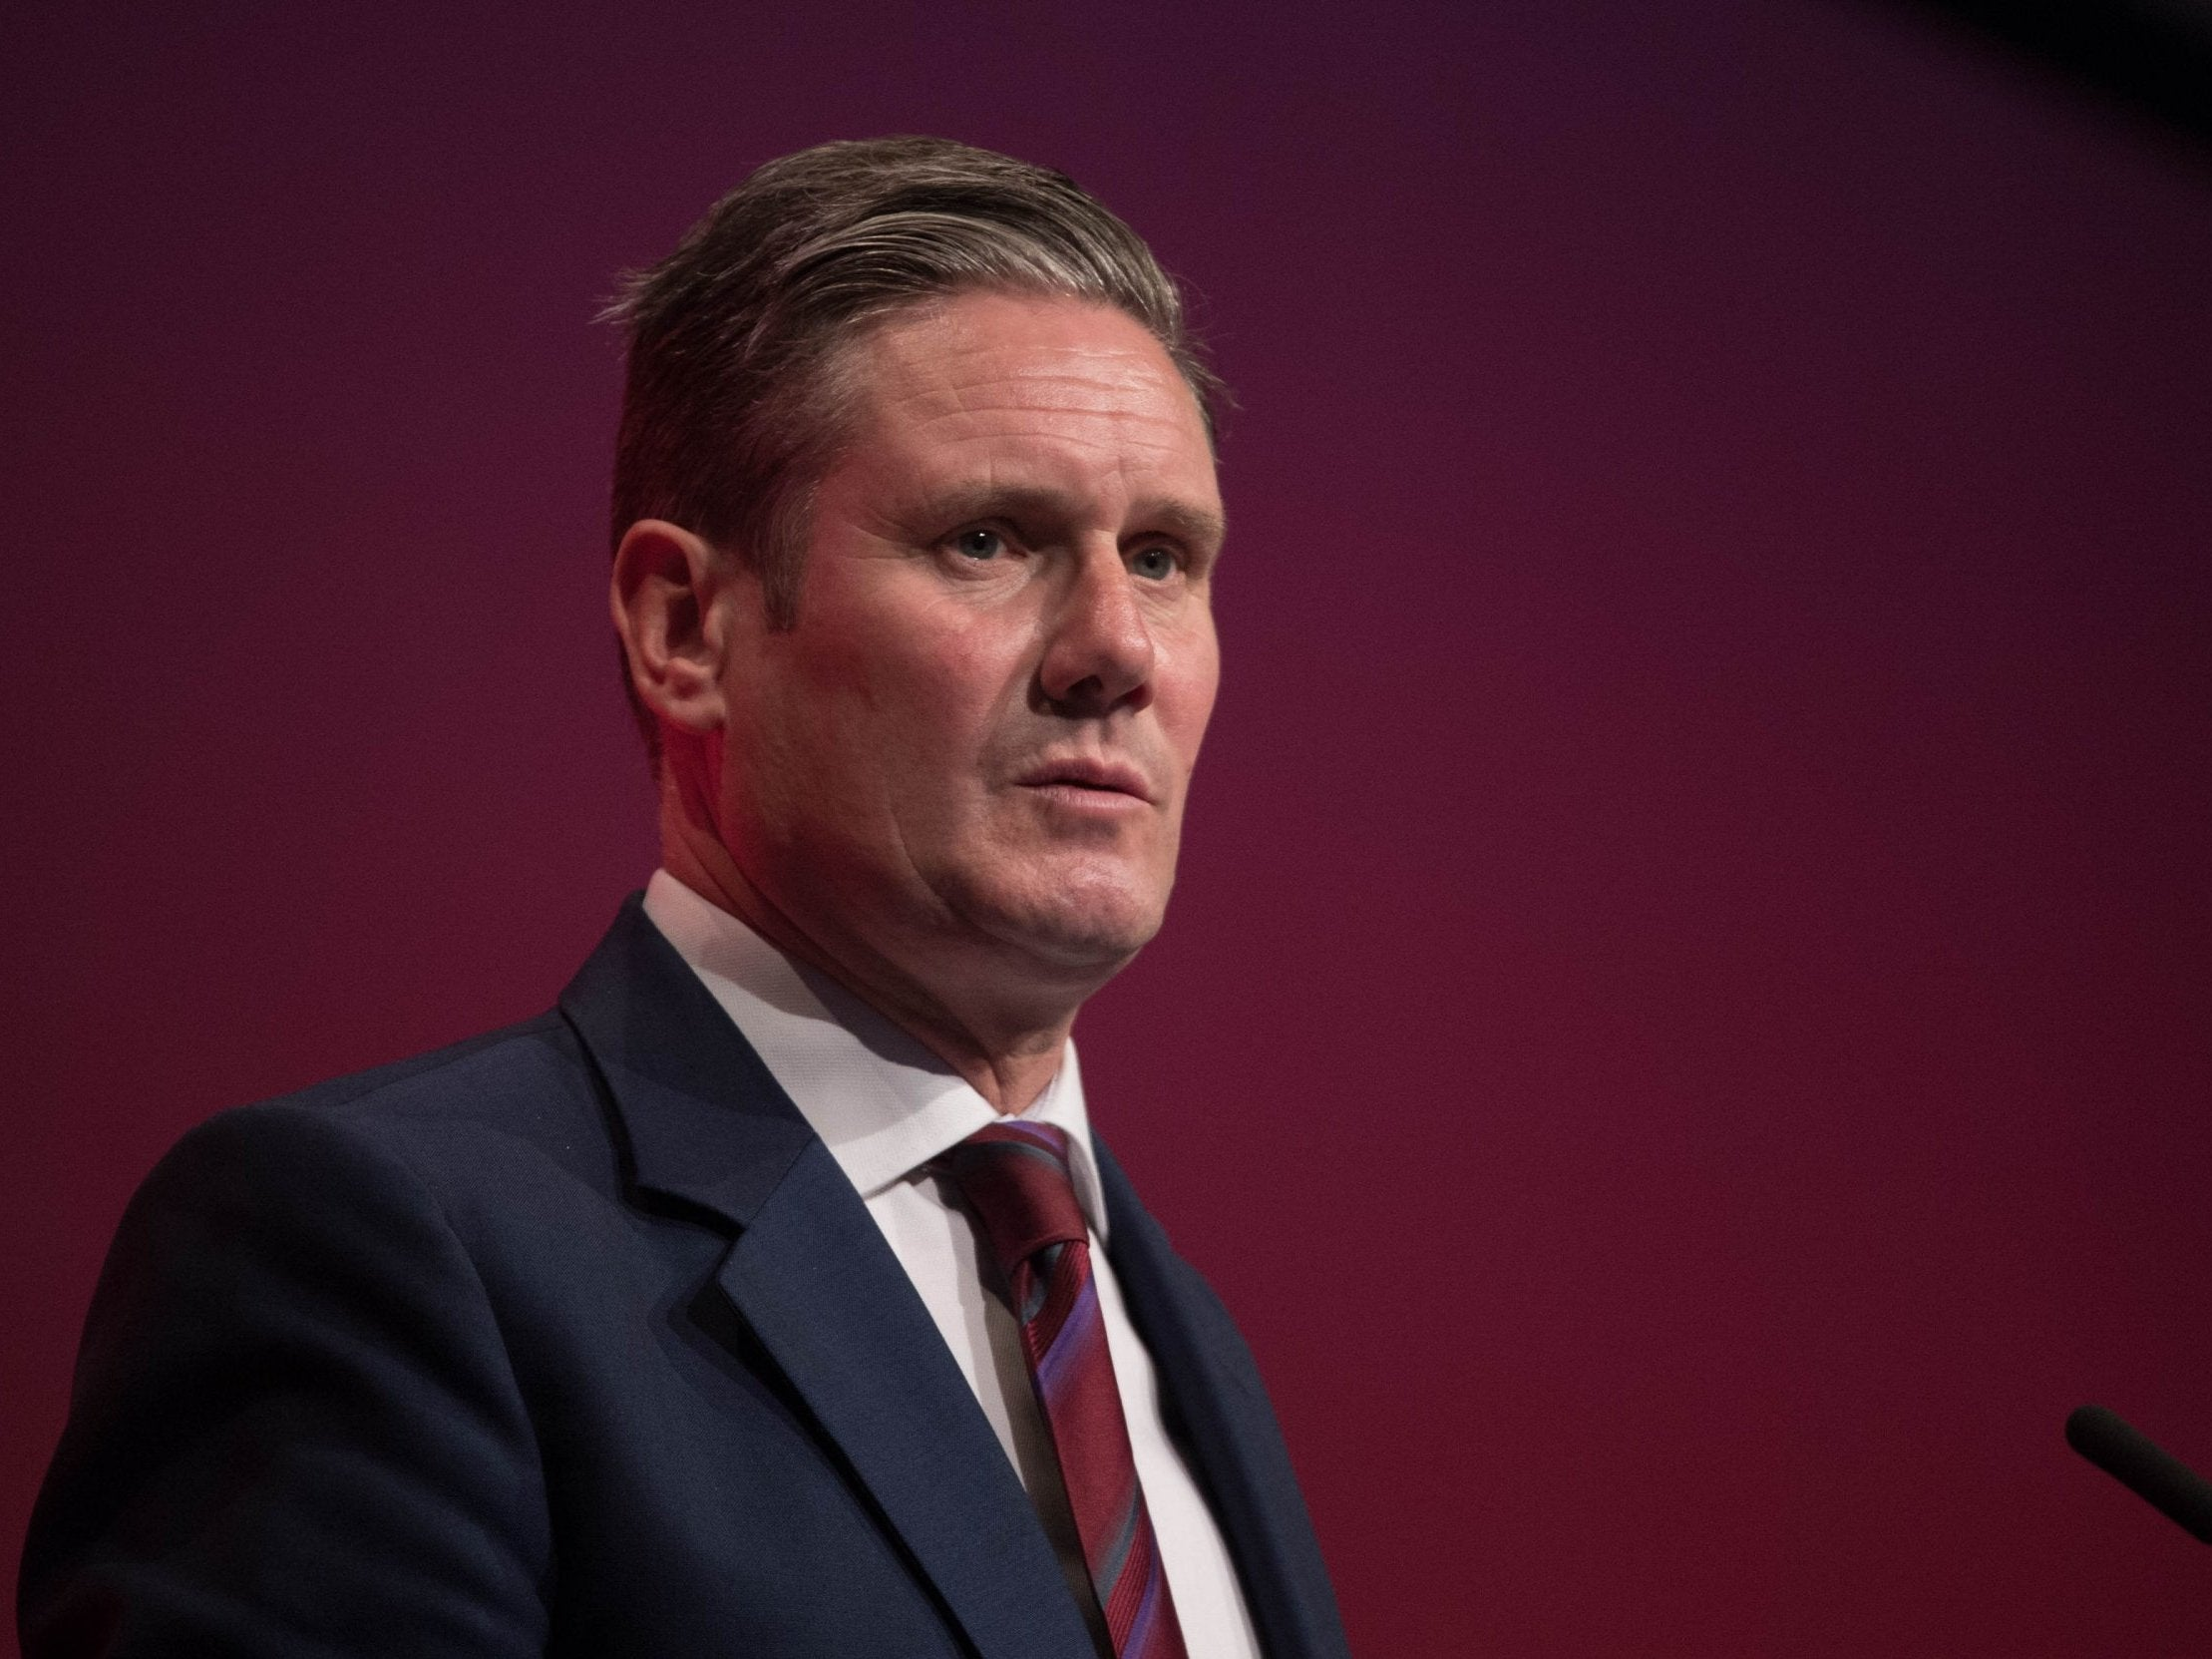 Brexit: Supporting the work for a new referendum will only be an option if Theresa May rejects our plan, says Keir Starmer - The Independent